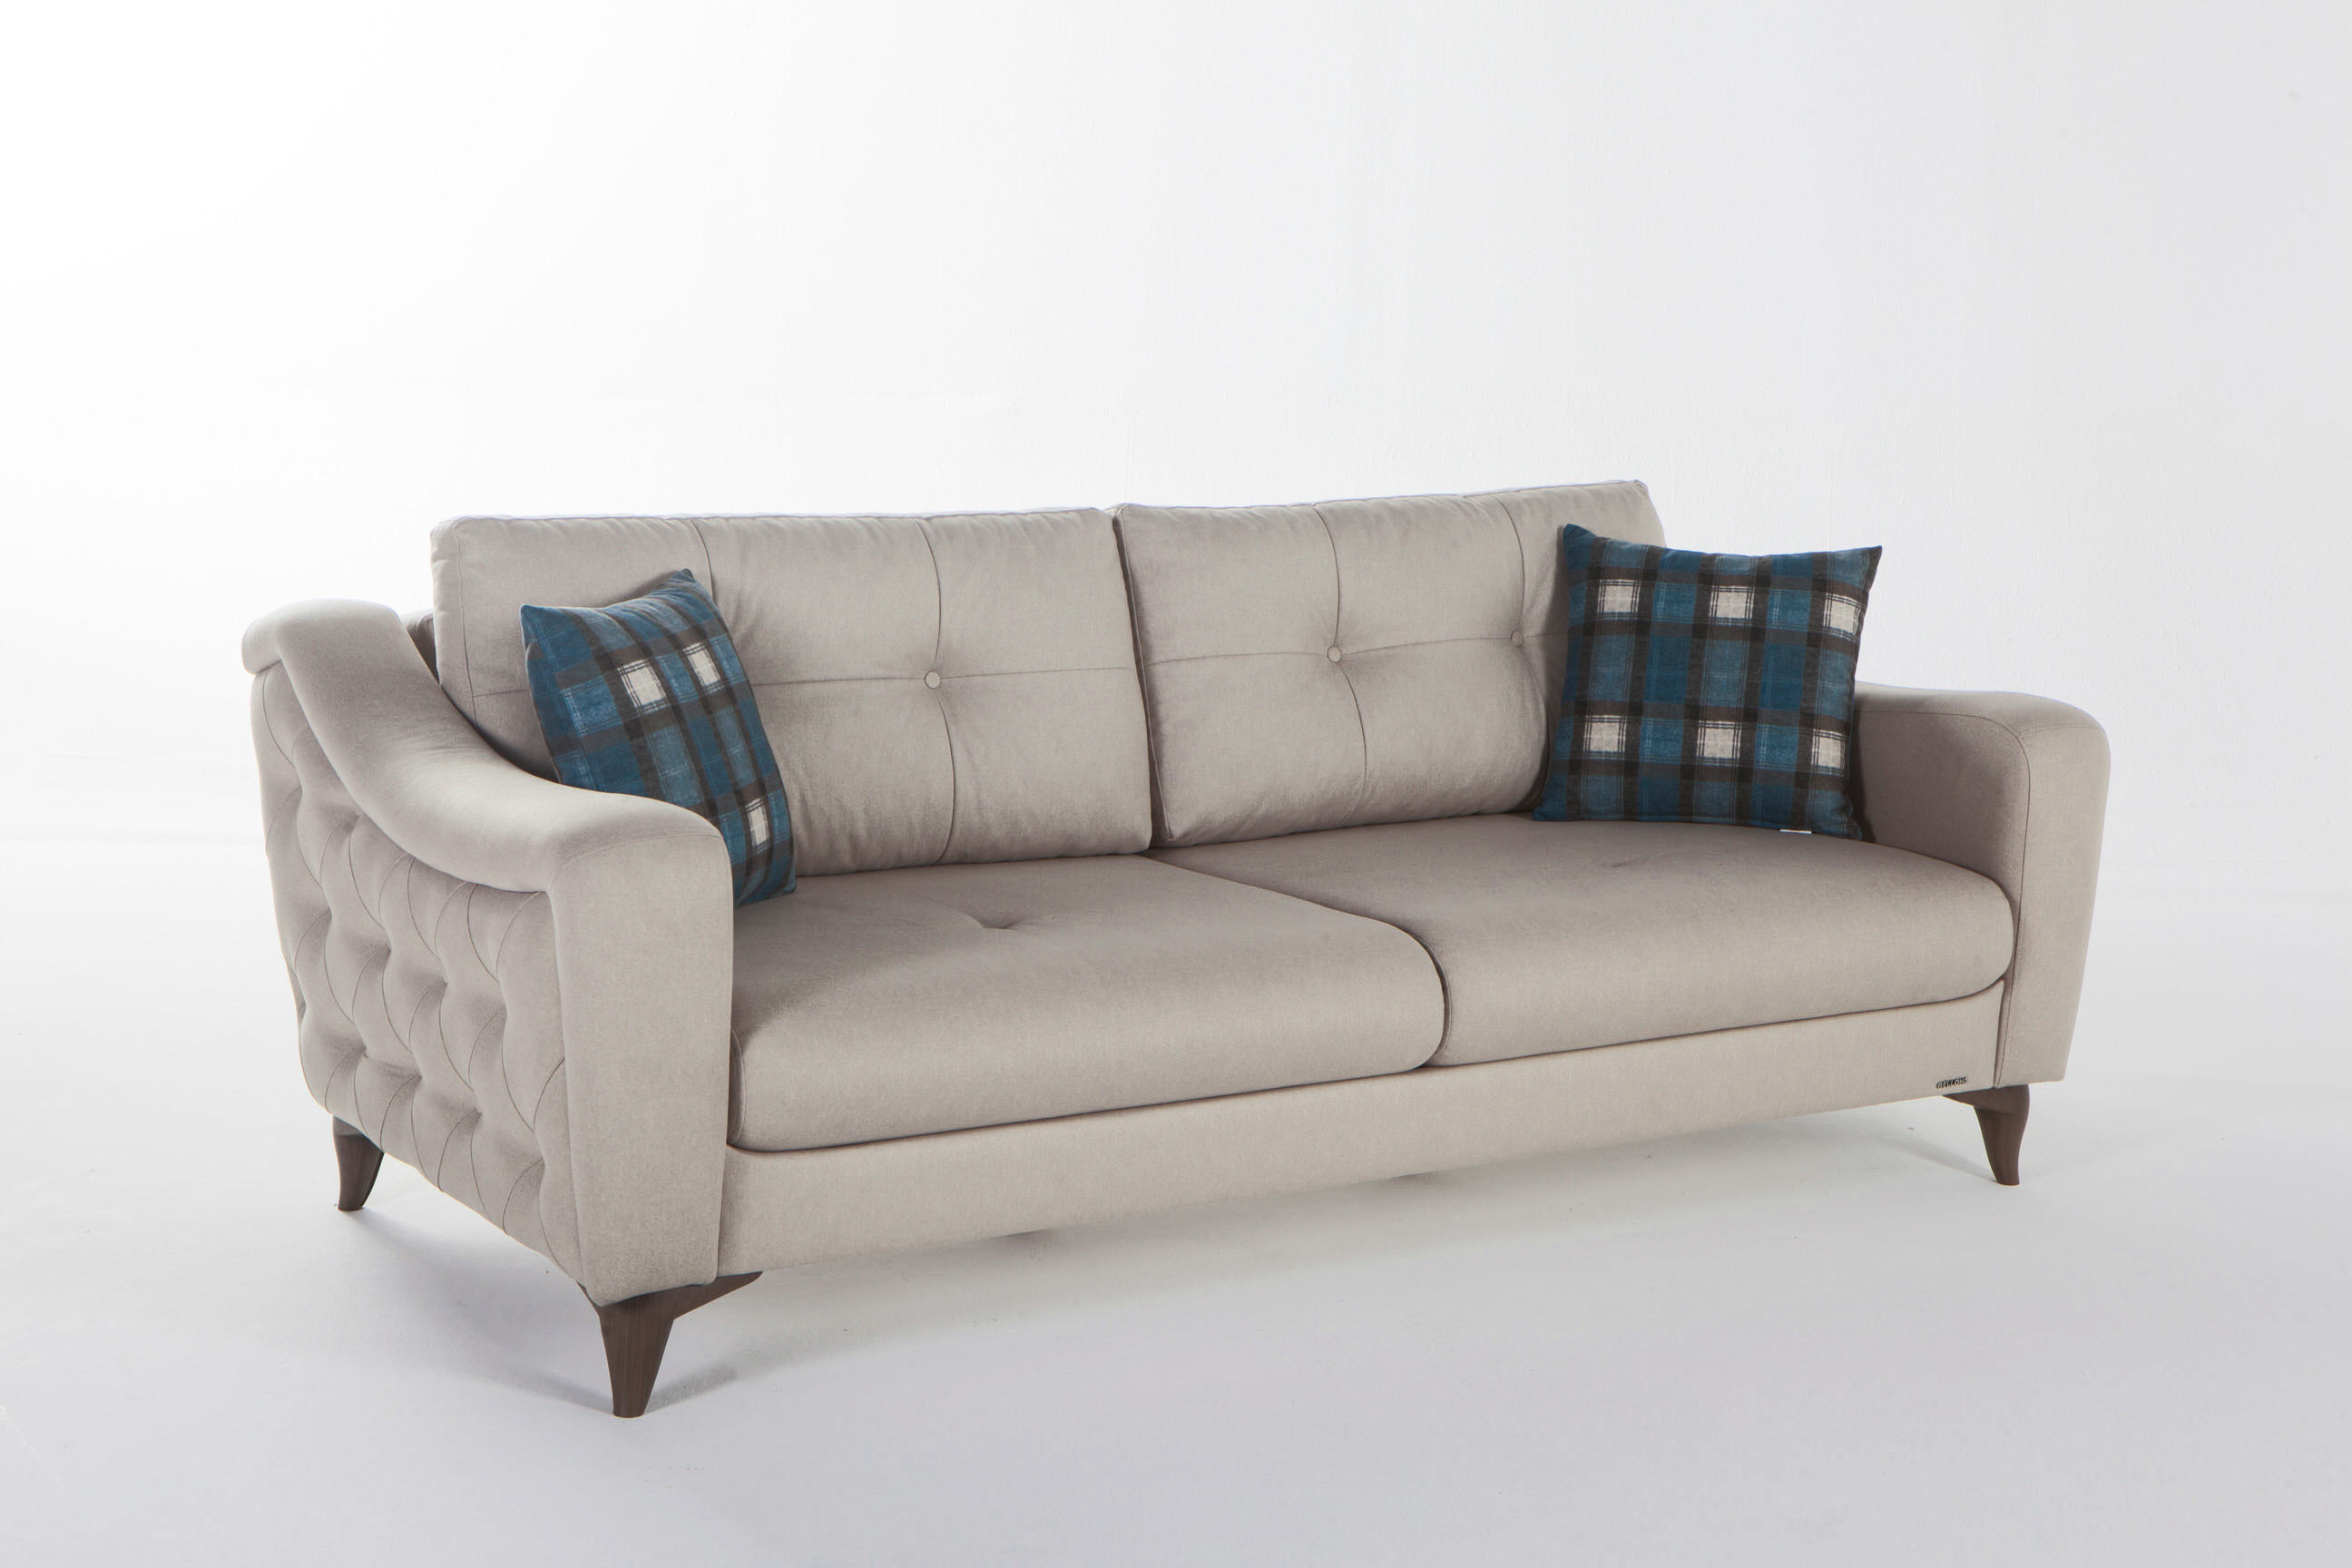 Malpensa Kasmir Cream Convertible Sofa Bed by Istikbal Furniture